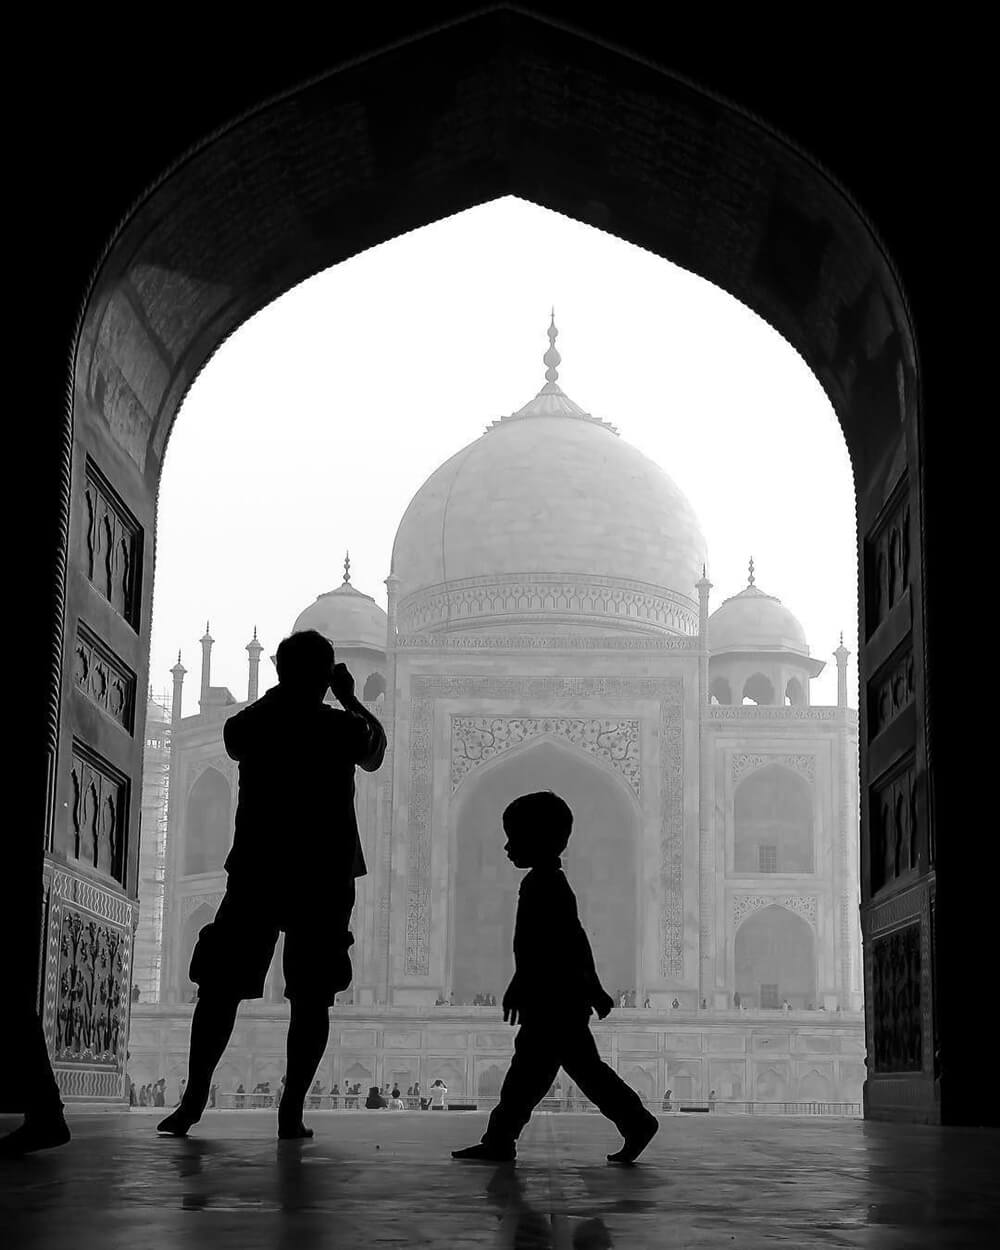 A Walk at Taj shot on a EOS 6D and EF 24-70mm f/2.8L II USM Lens by @gp_canon